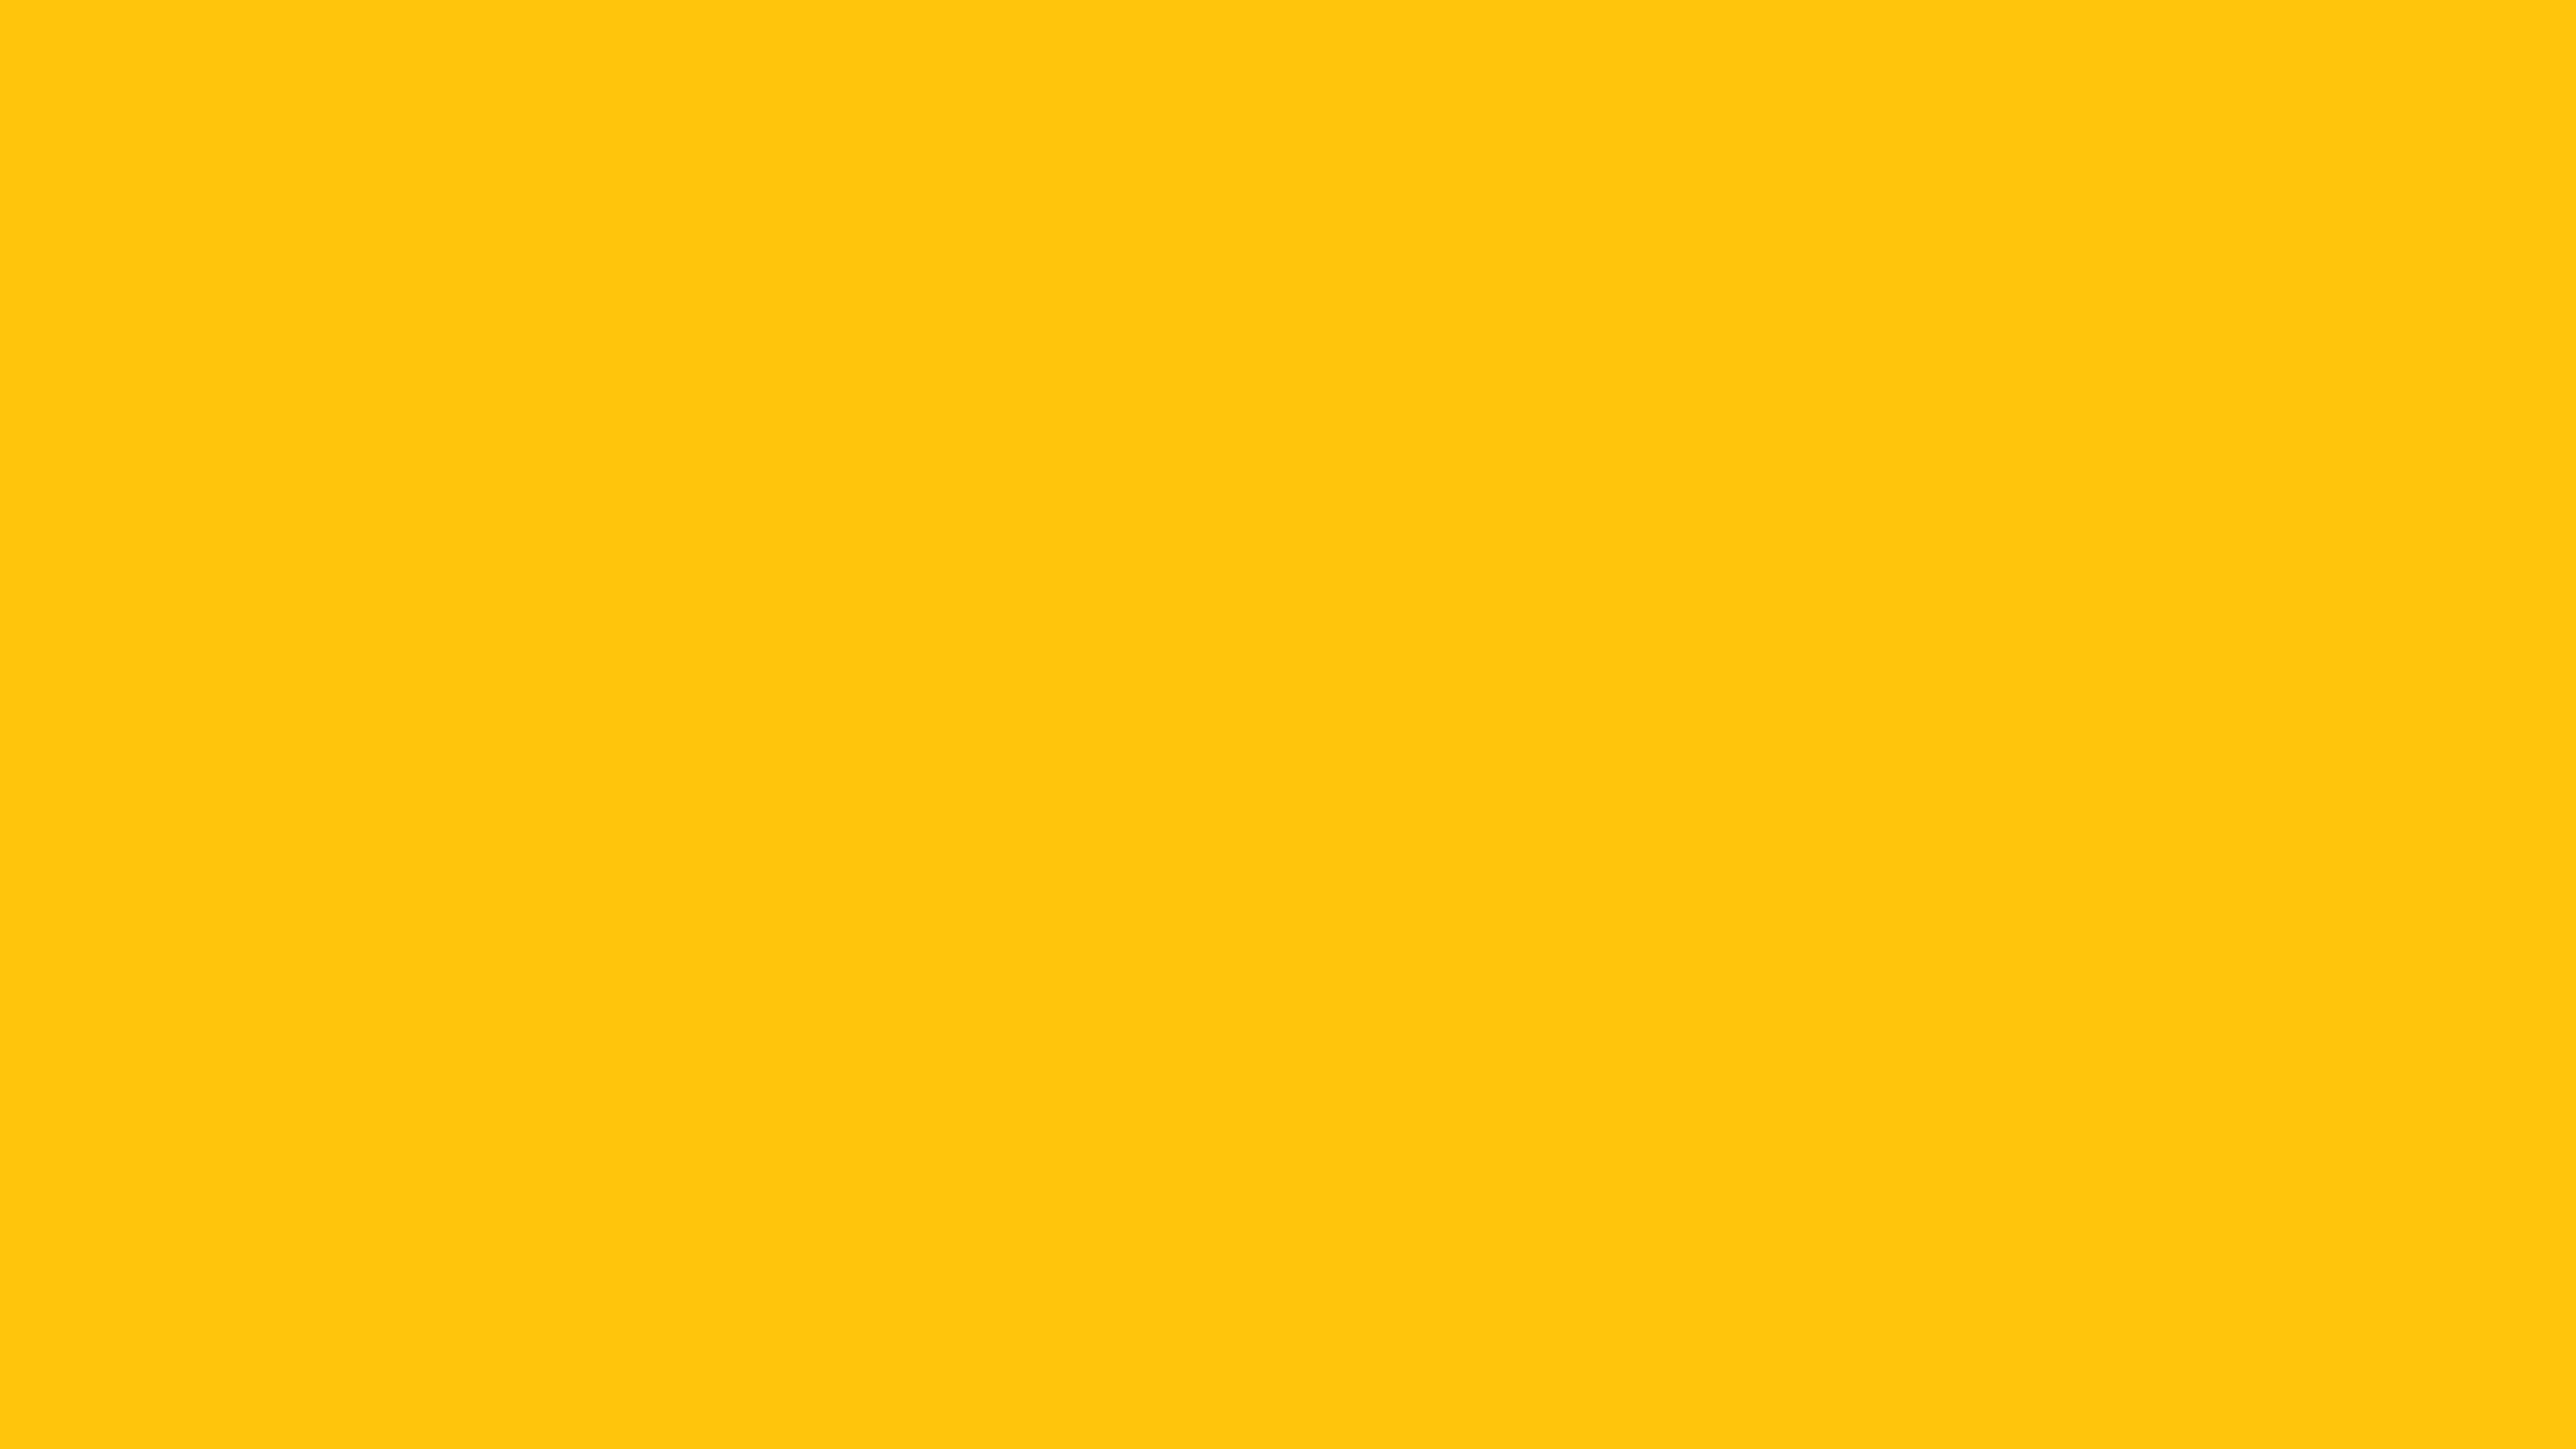 4096x2304 Mikado Yellow Solid Color Background